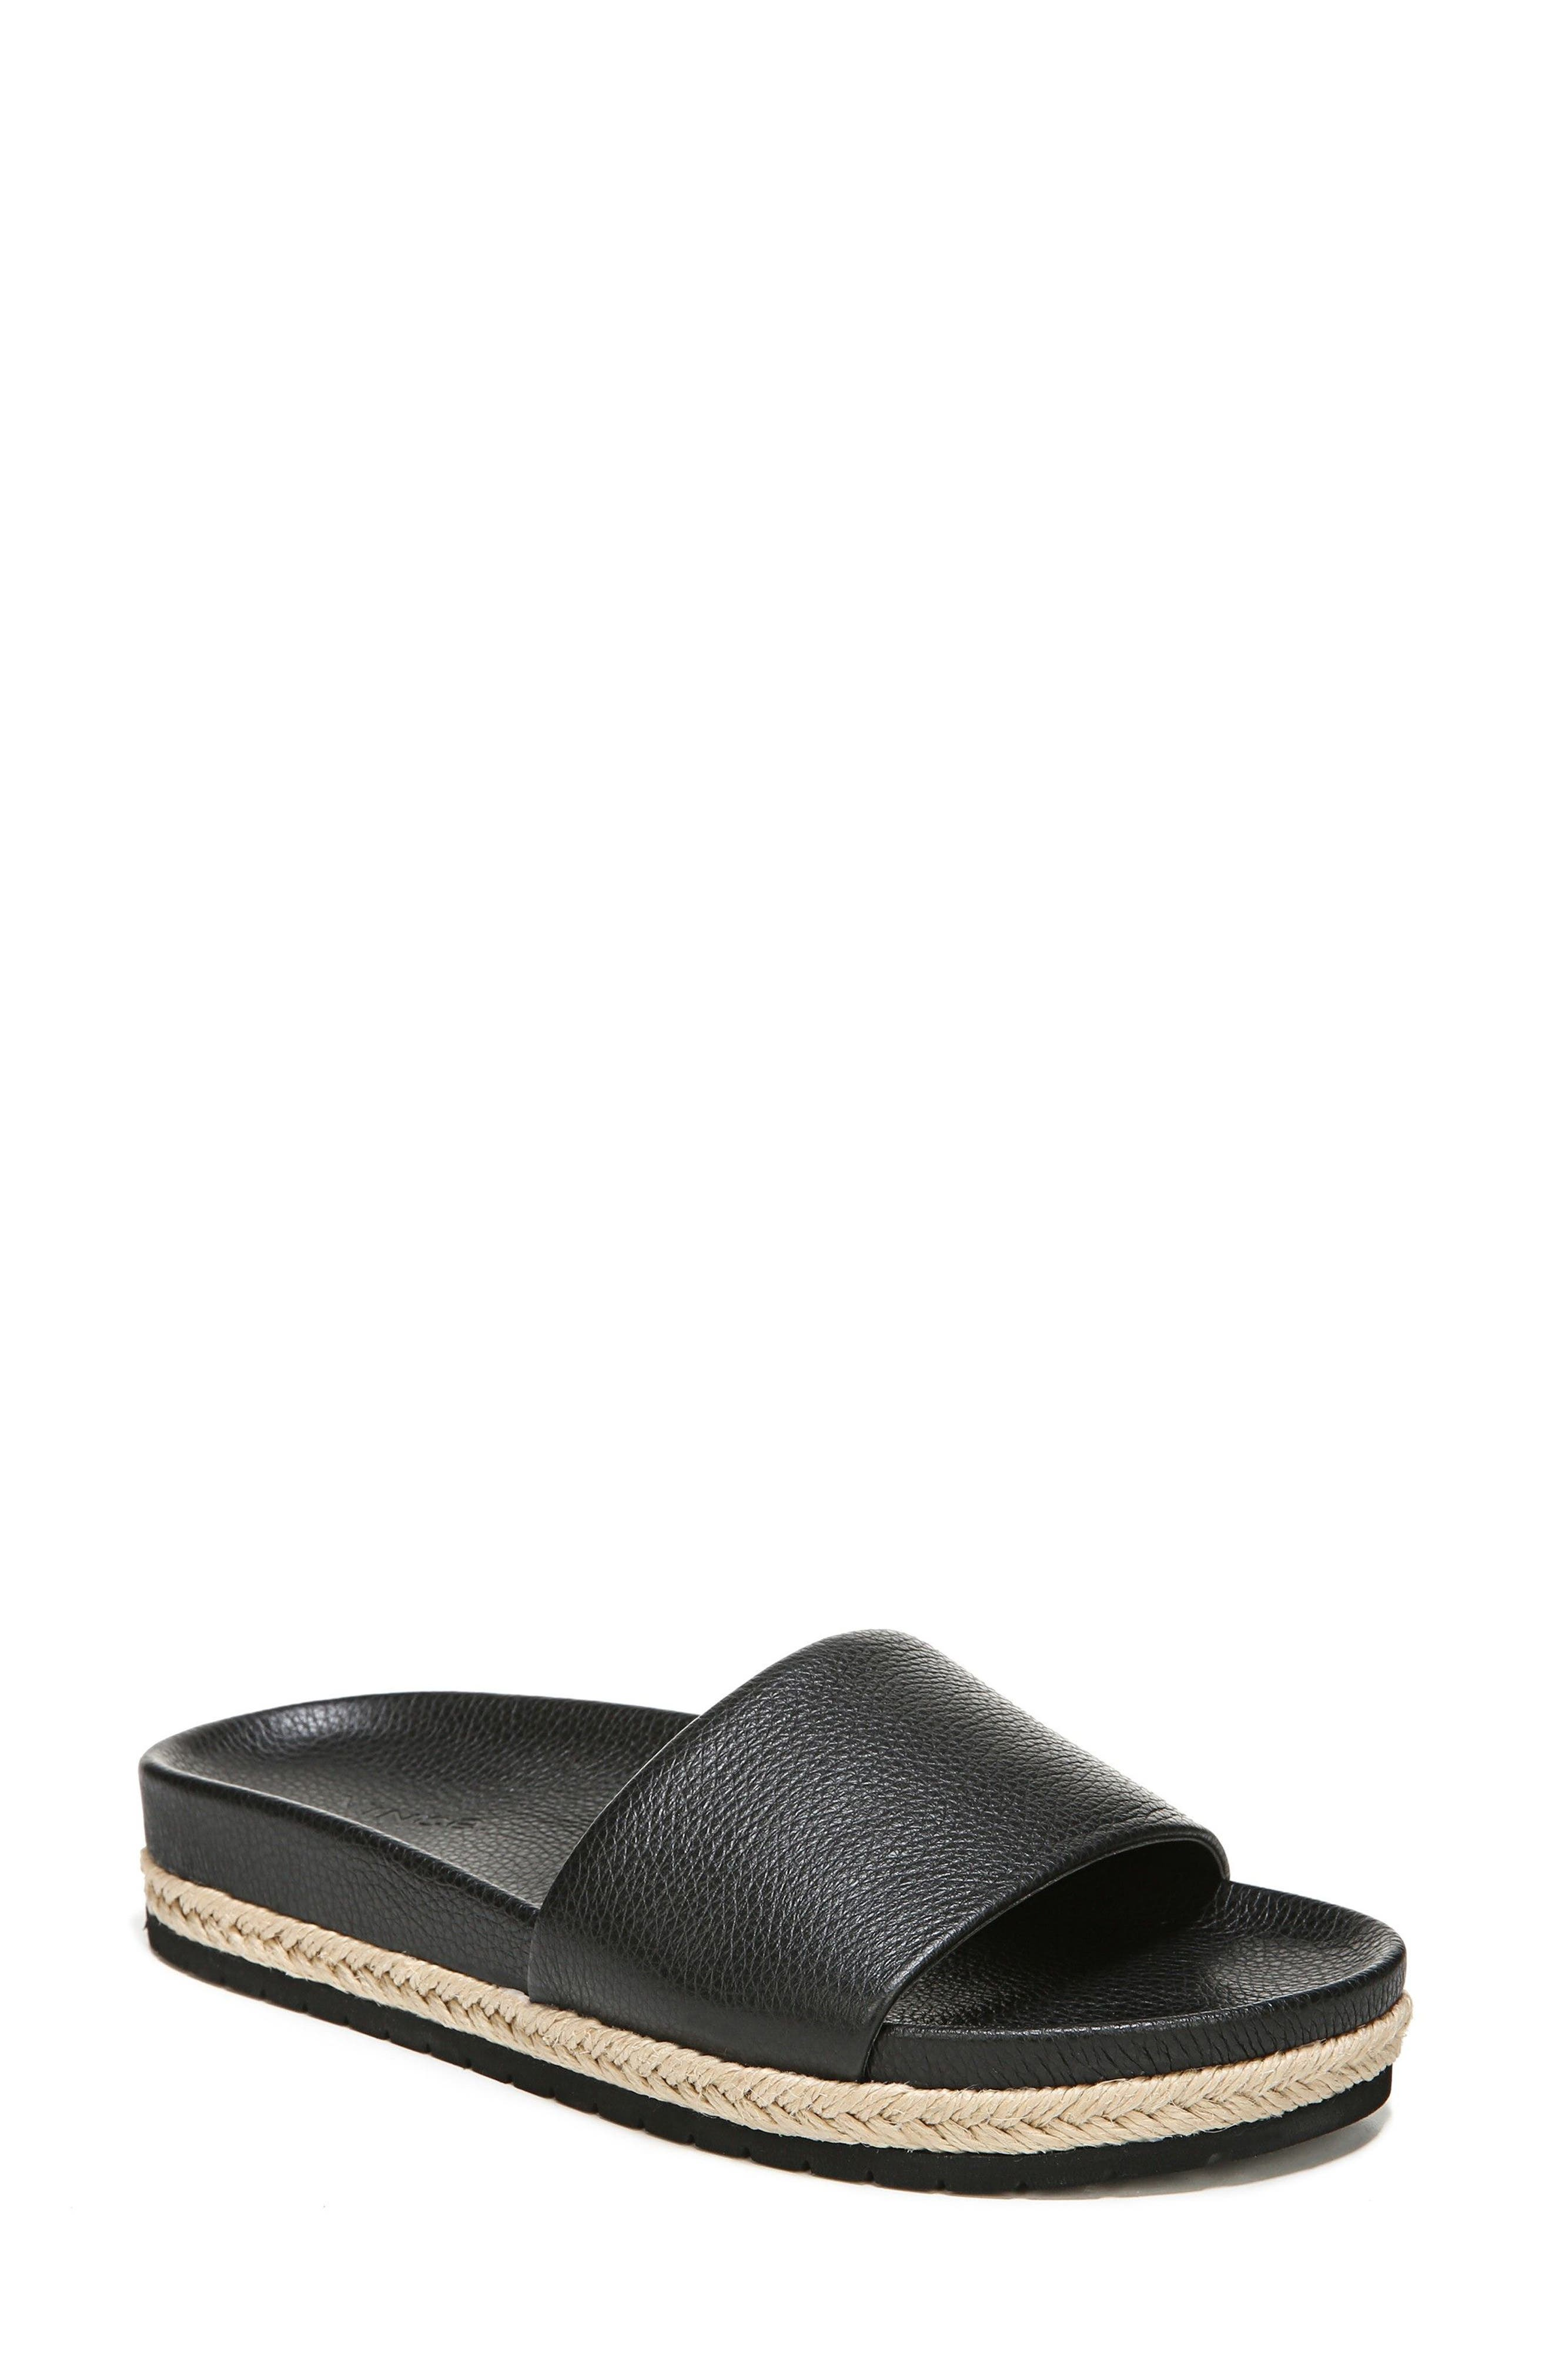 Aurelia Slide Sandal,                         Main,                         color, 001